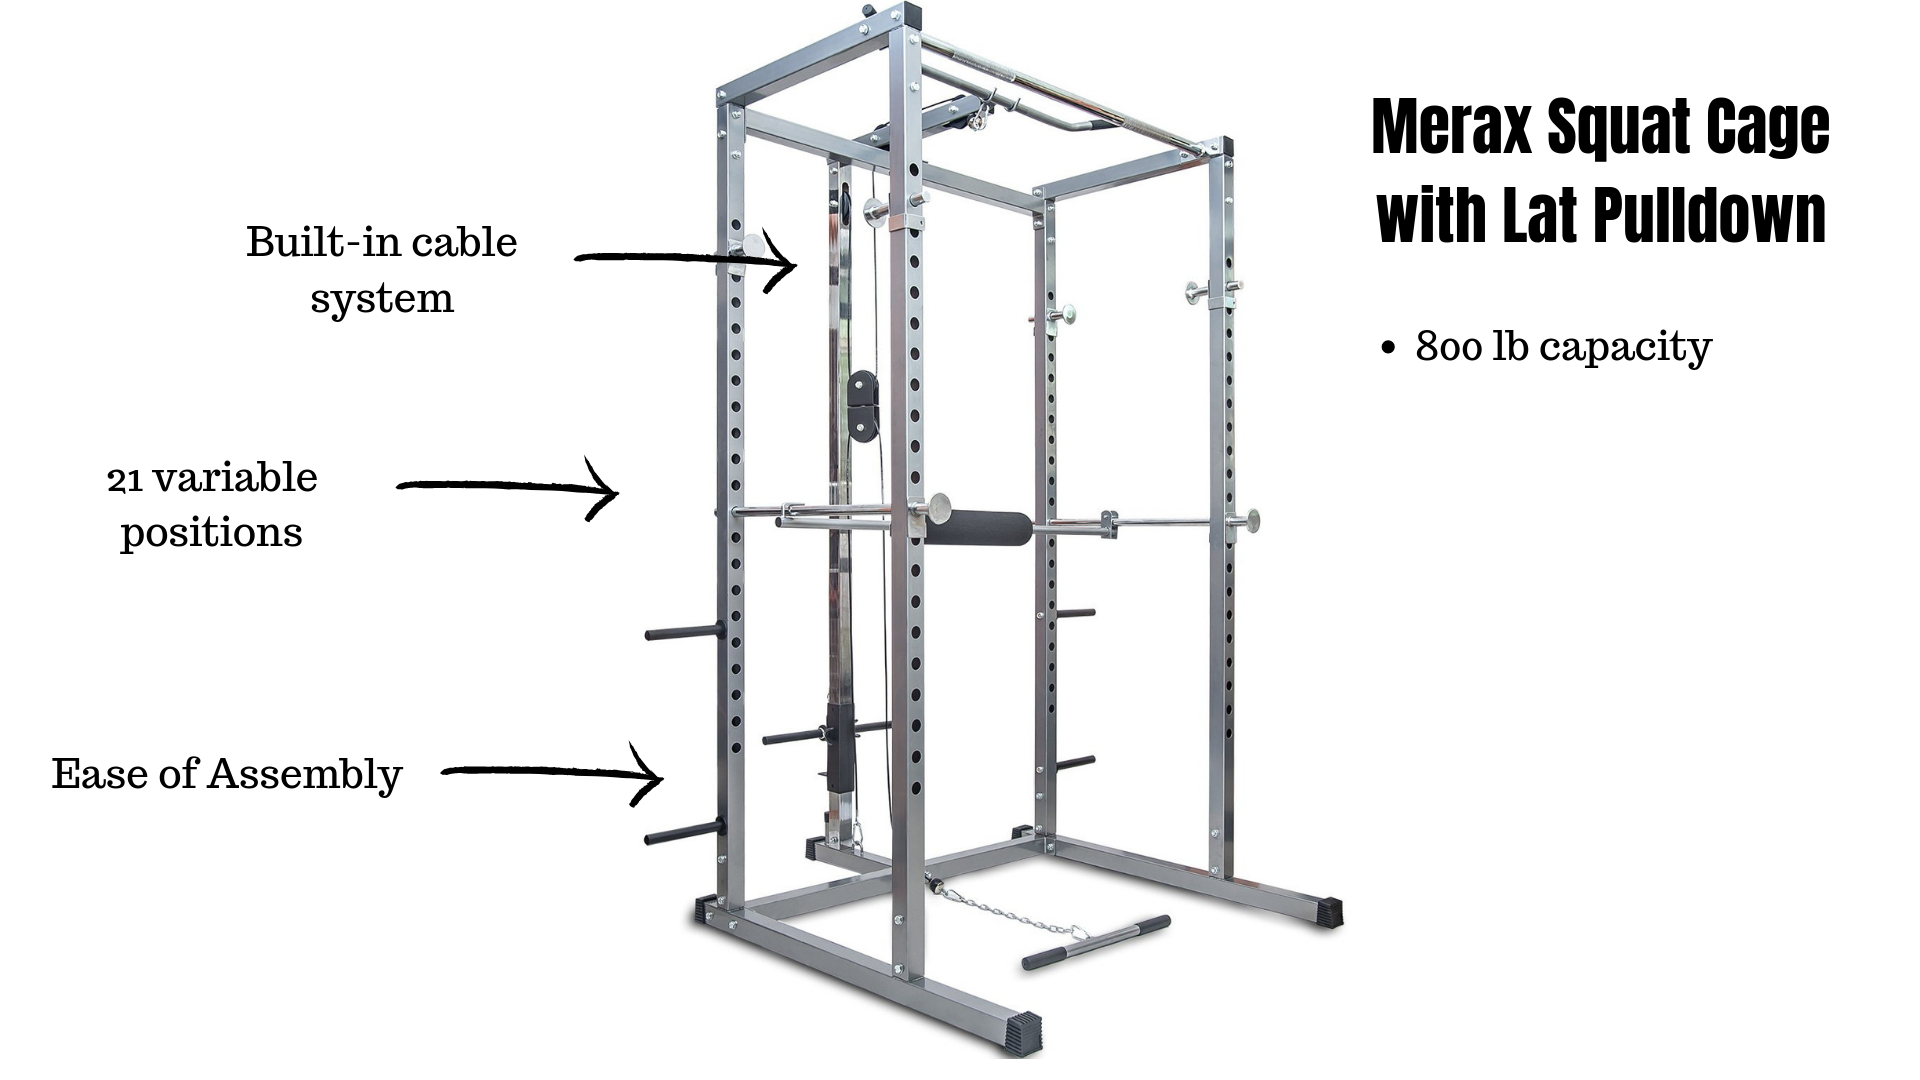 budget Merax Squat Cage with Lat Pulldown